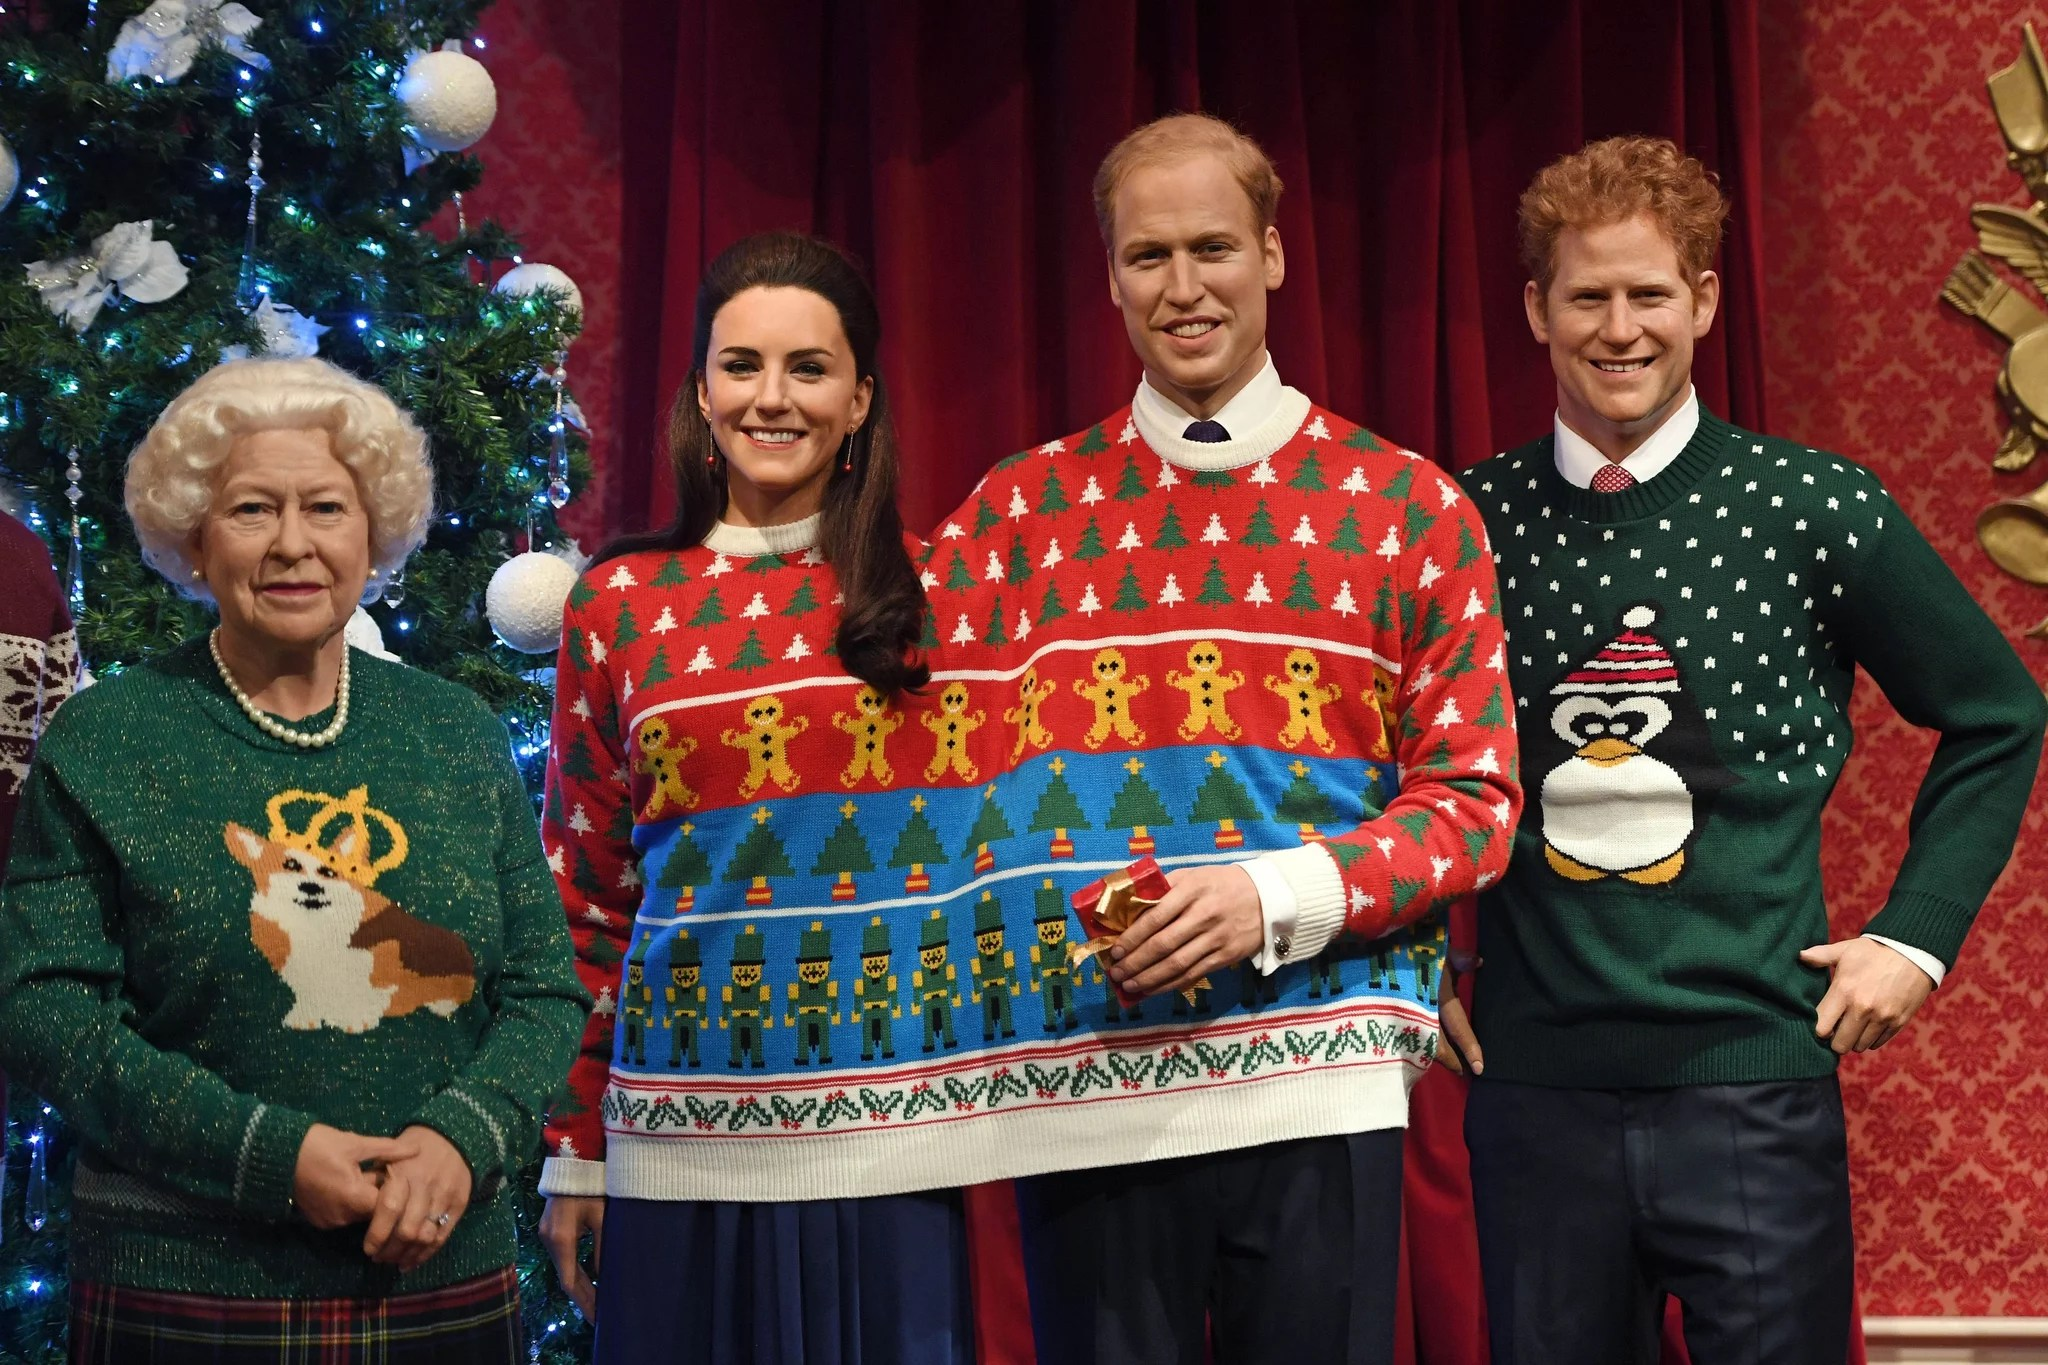 The Royals Wax Figures In Christmas Sweaters December 2016